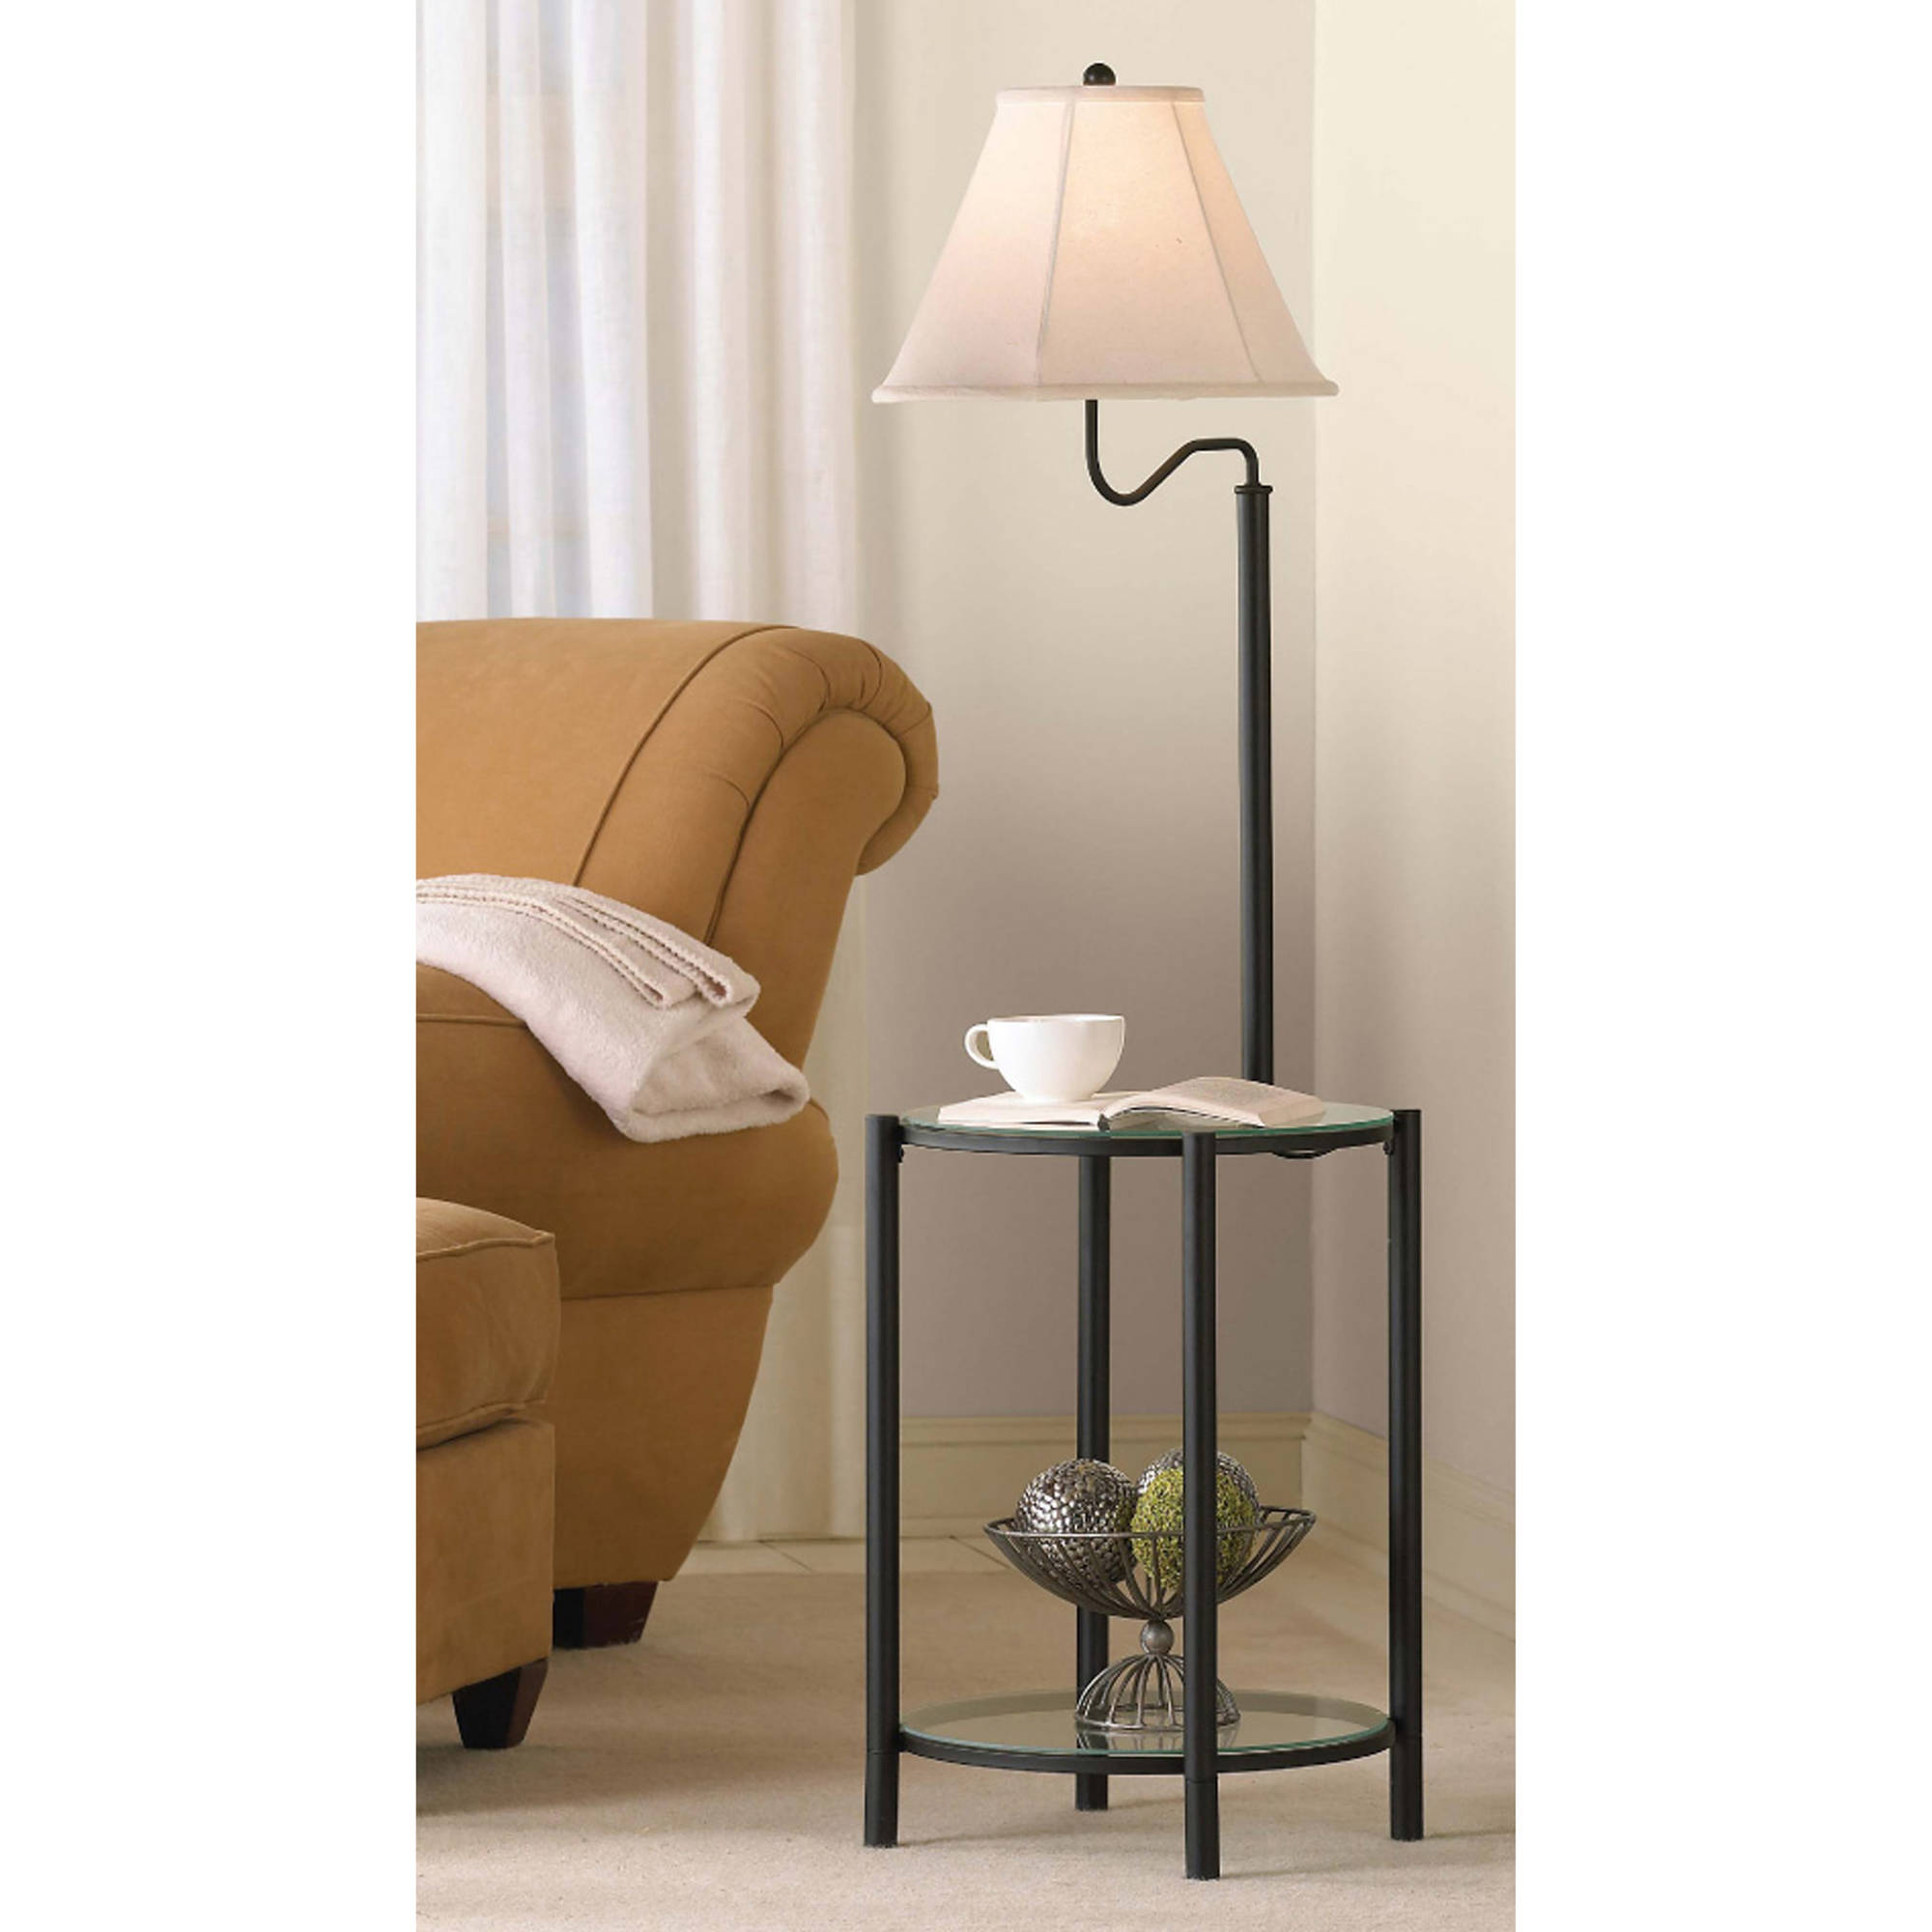 mainstays glass end table floor lamp matte black cfl bulb included combo tall chrome slim sofa side top outdoor garage storage very narrow bedside leon dining set clear perspex